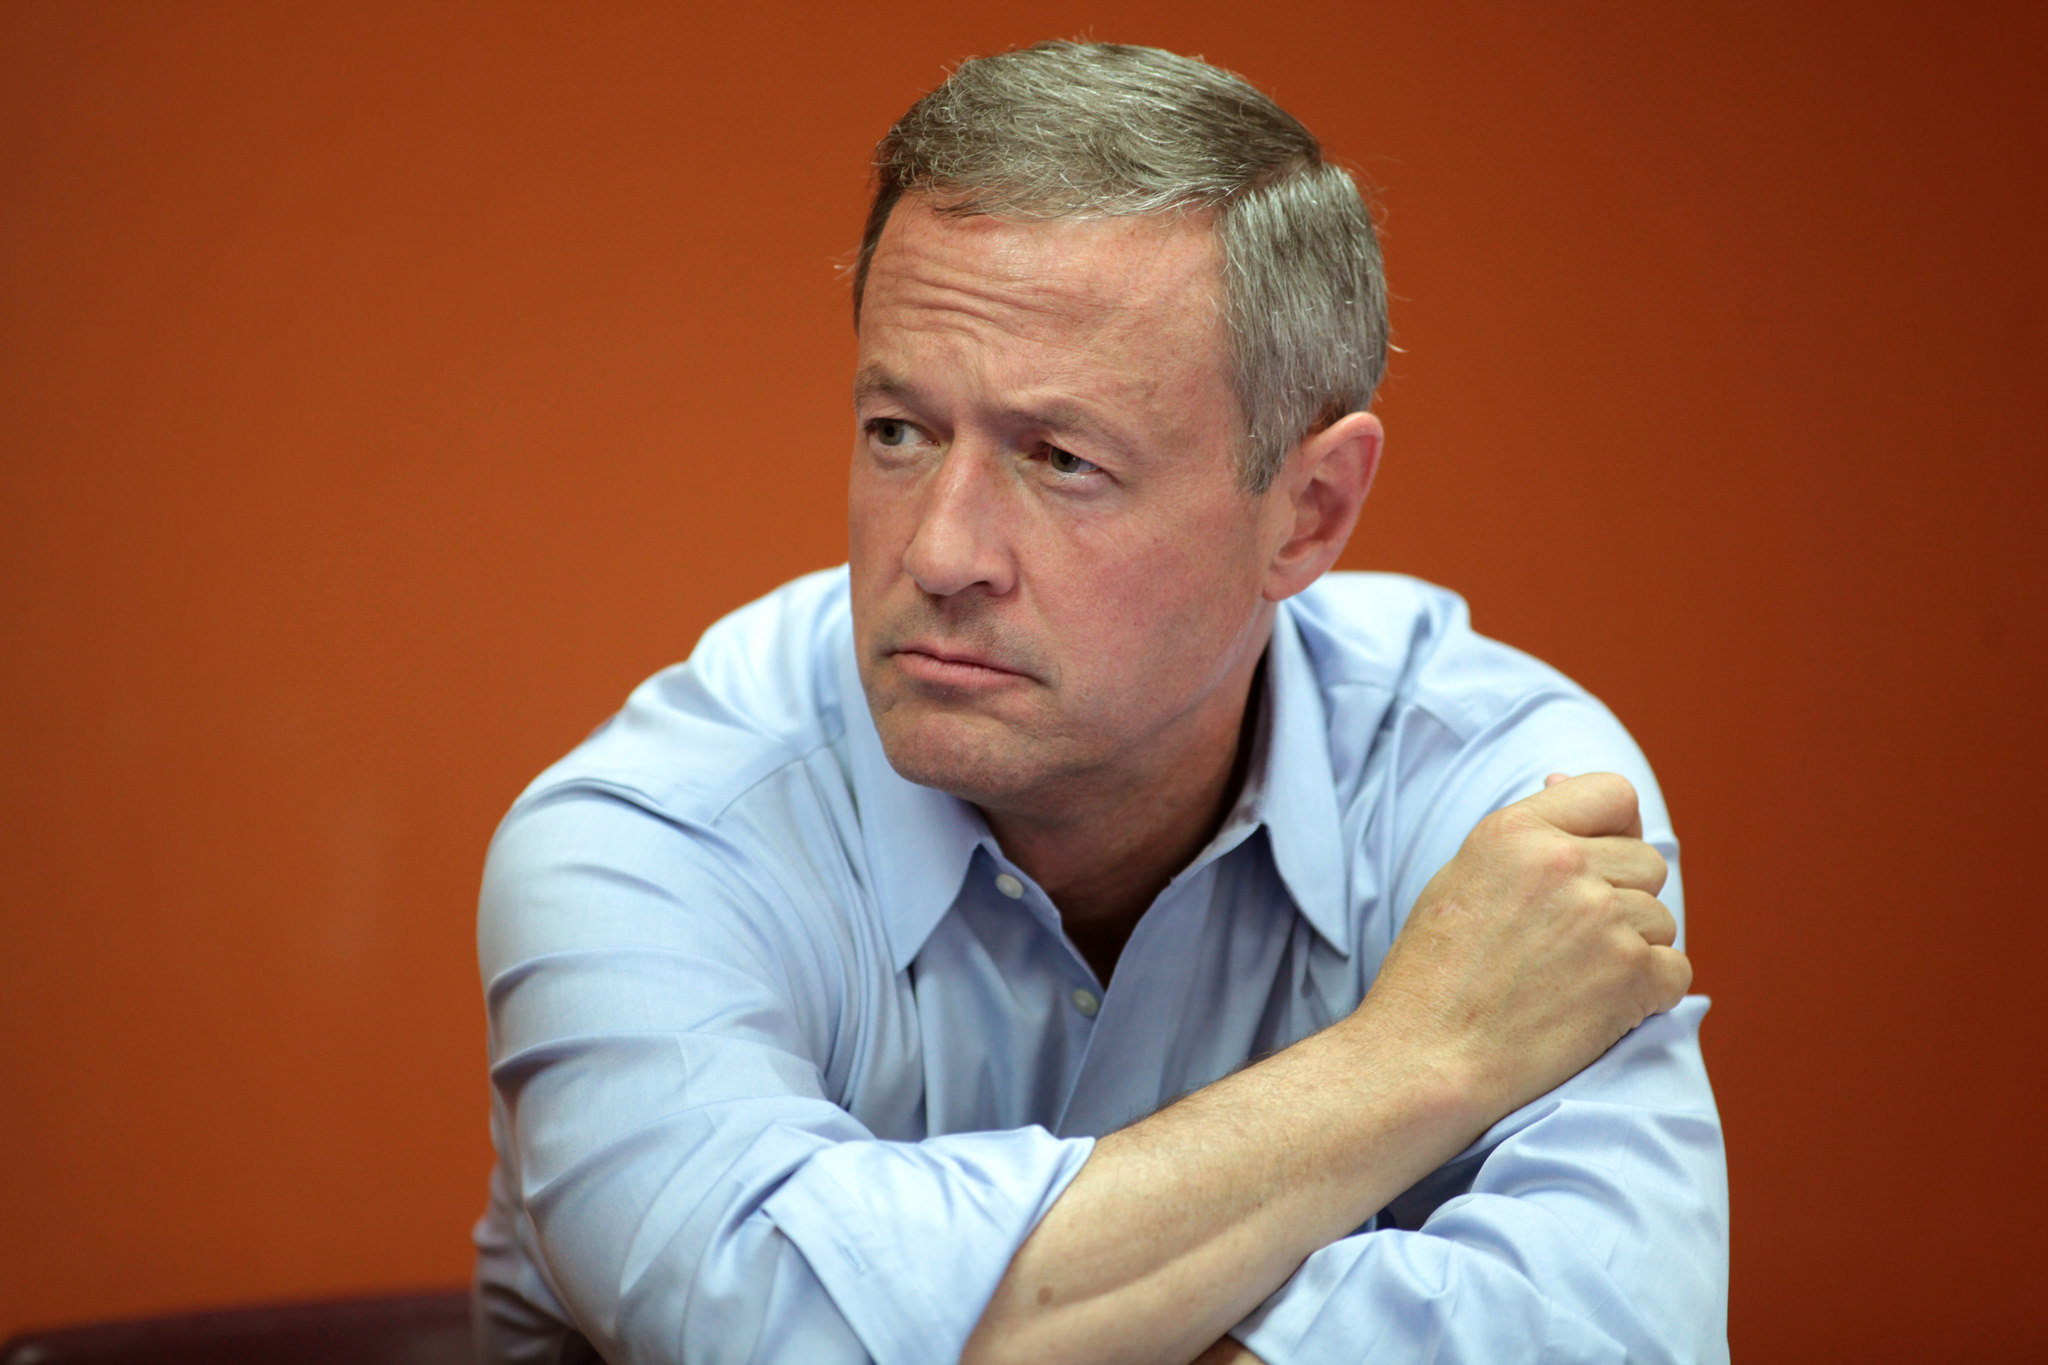 Picture of Martin O'Malley sitting down against an orange background